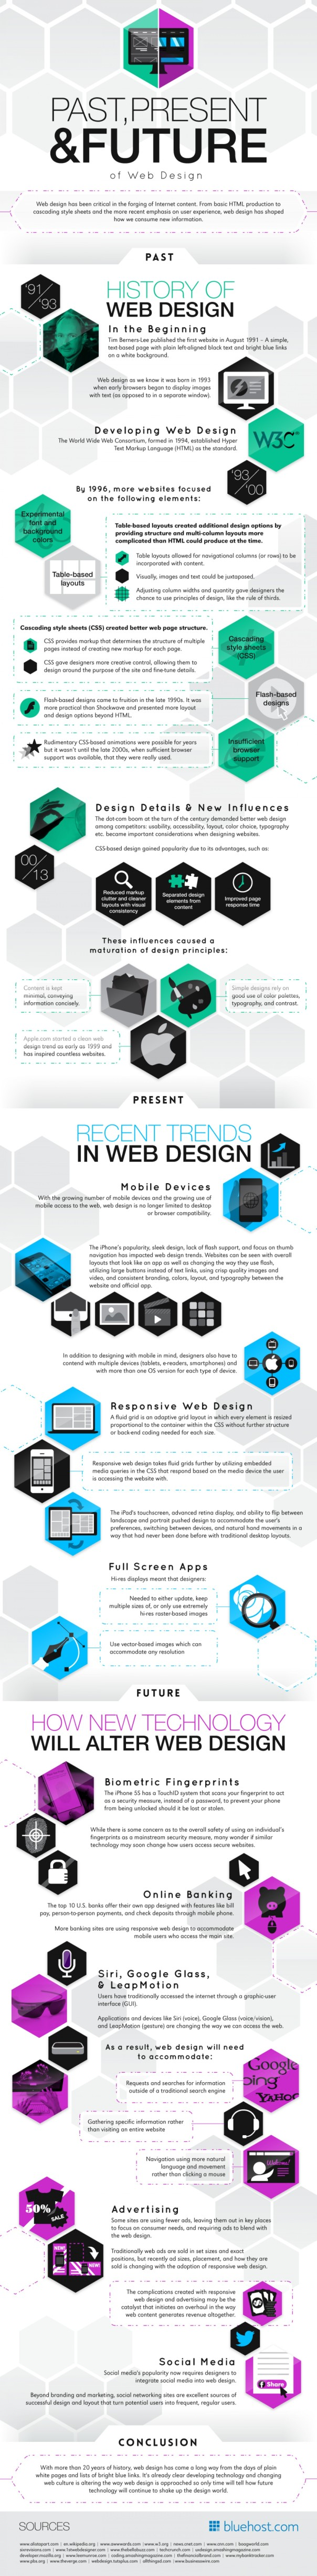 past-present-and-future-of-web-design